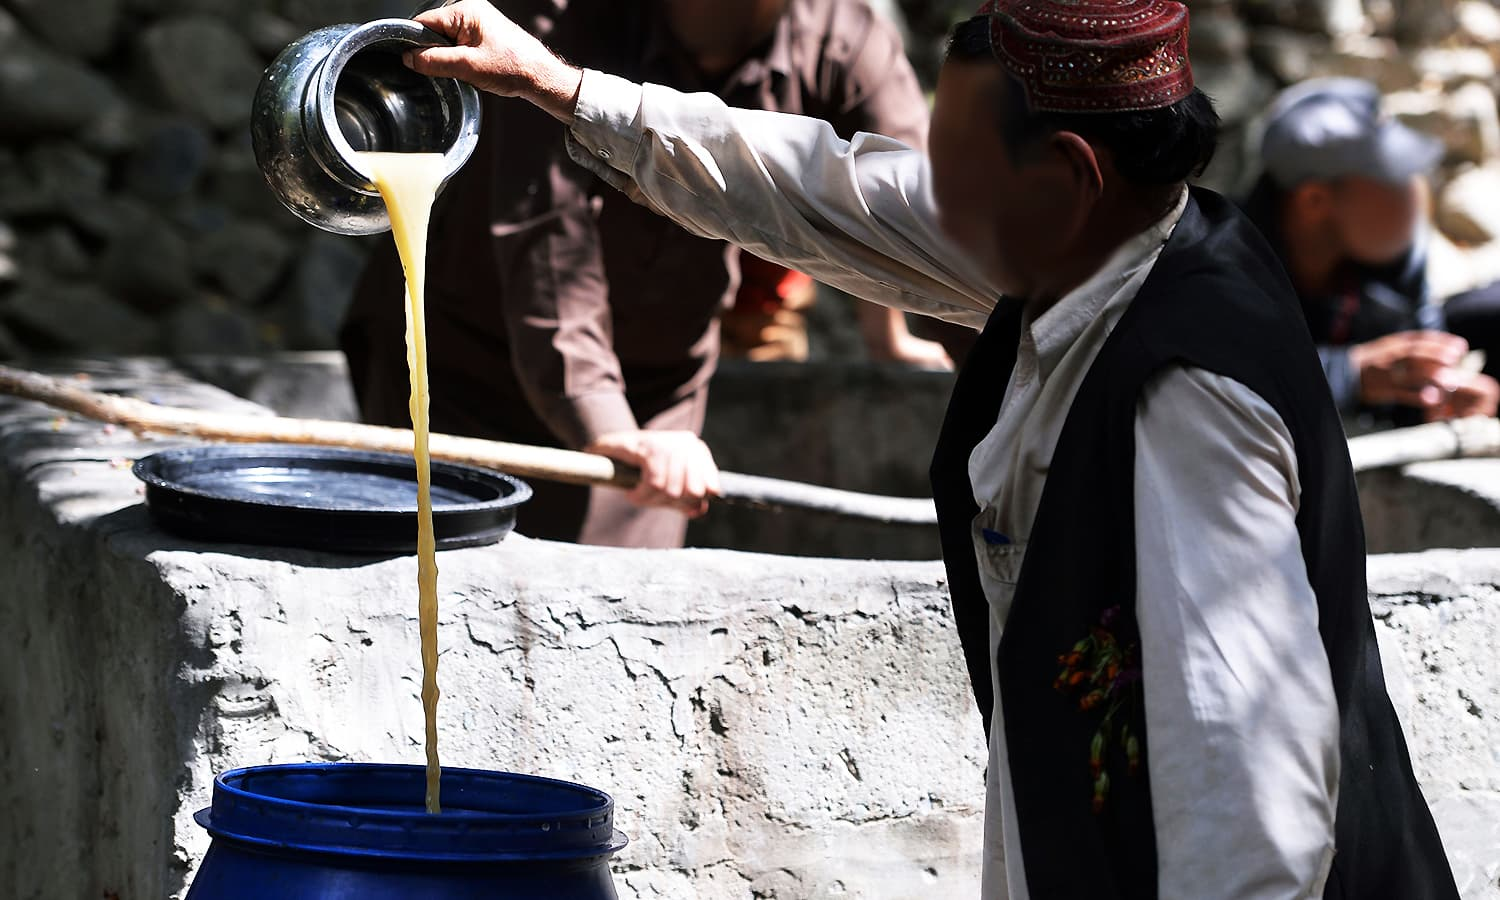 A local pours the juice from crushed grapes as part of a brewing wine process in a garden in the remote village. ─ AFP